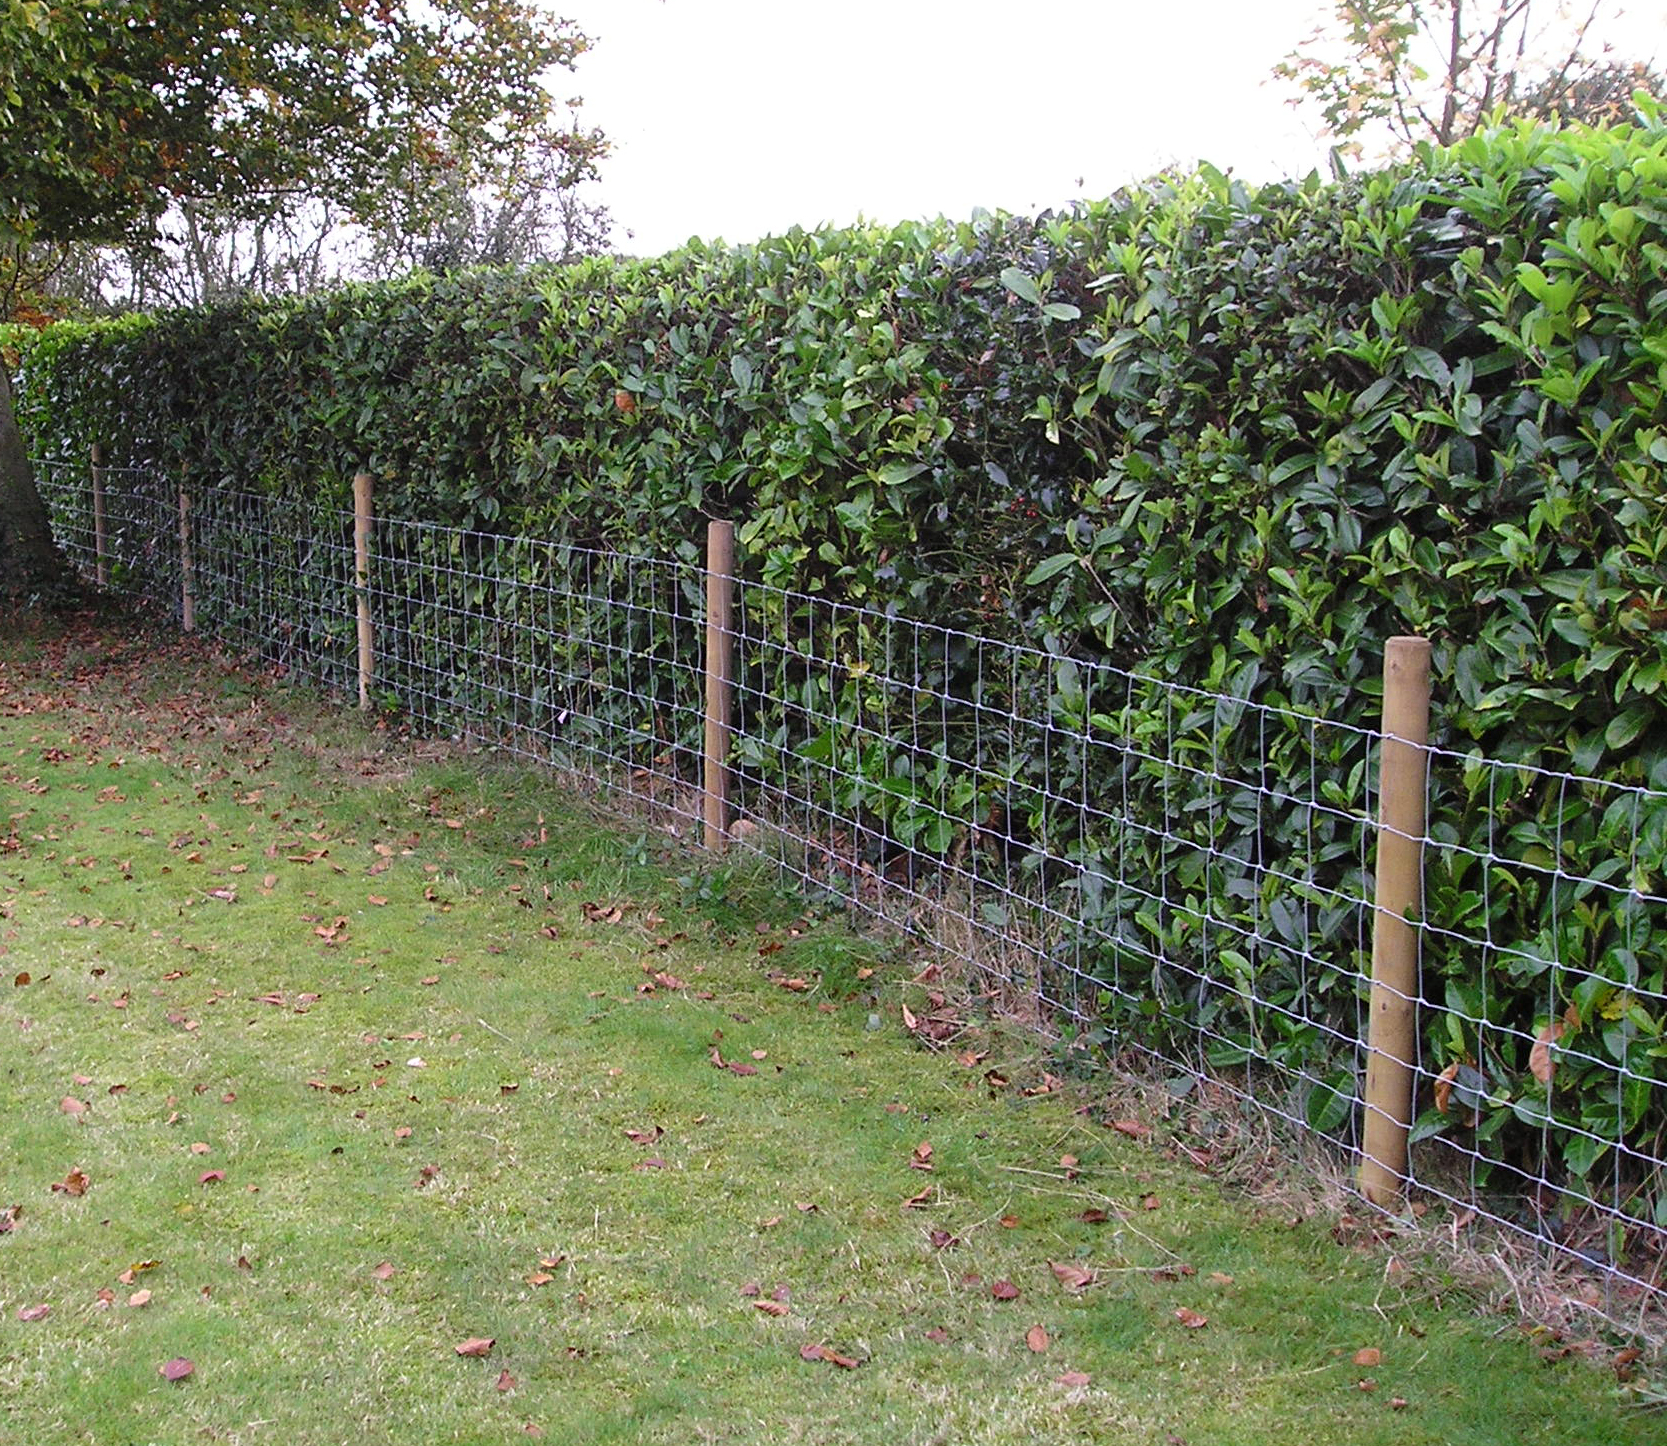 Stock netting hidden in a hedge